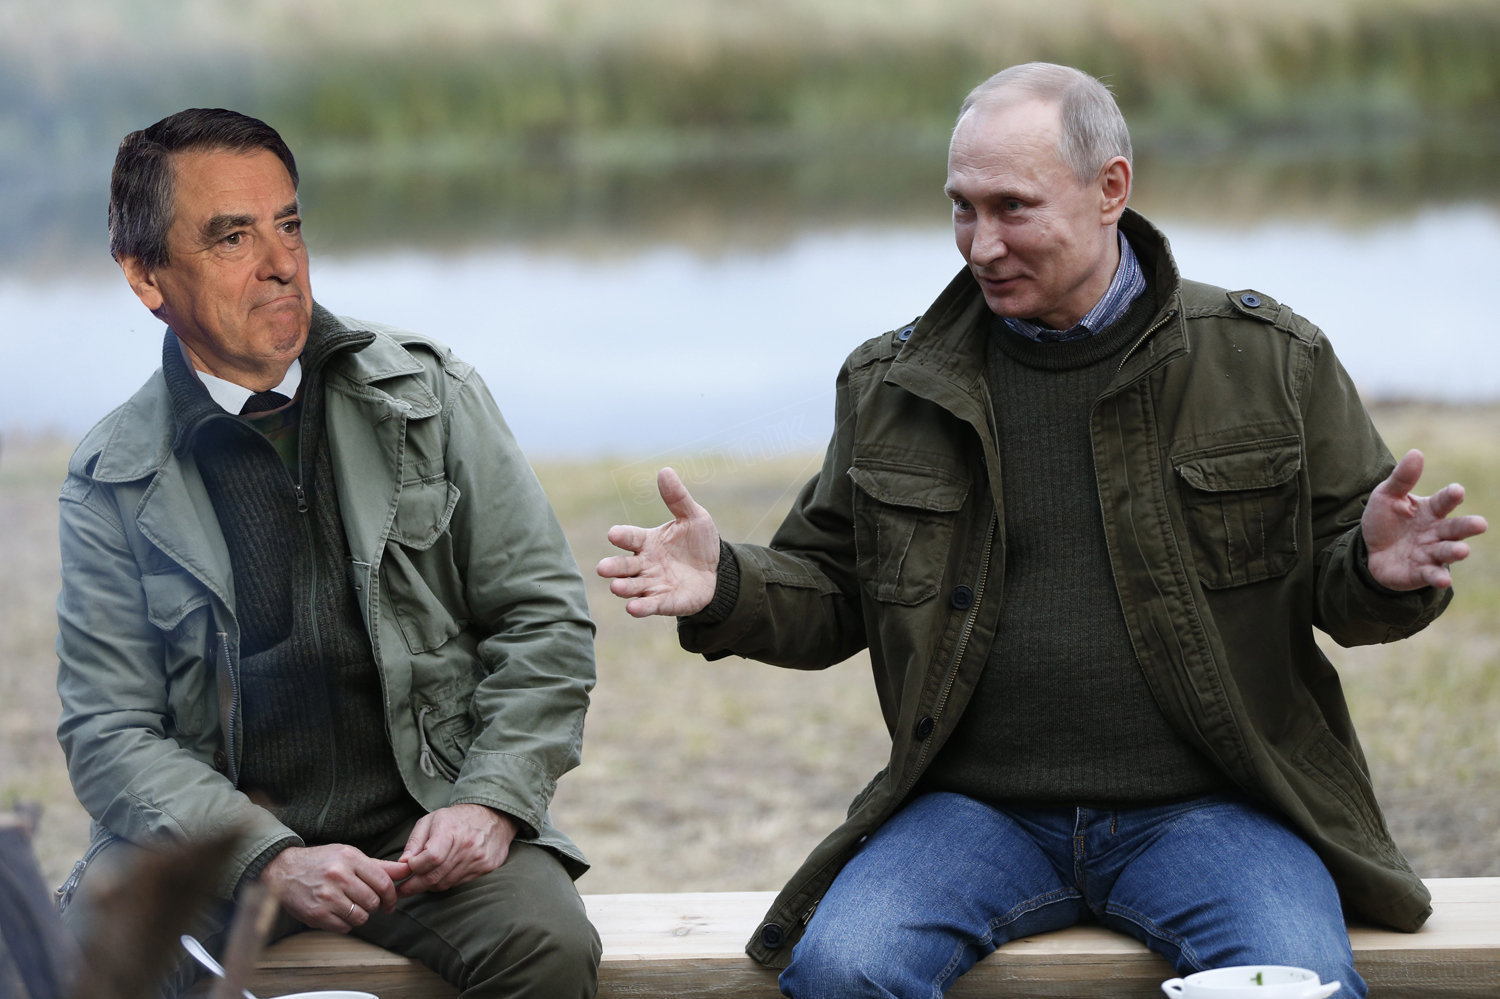 François Fillon and Vladimir Putin (collage)